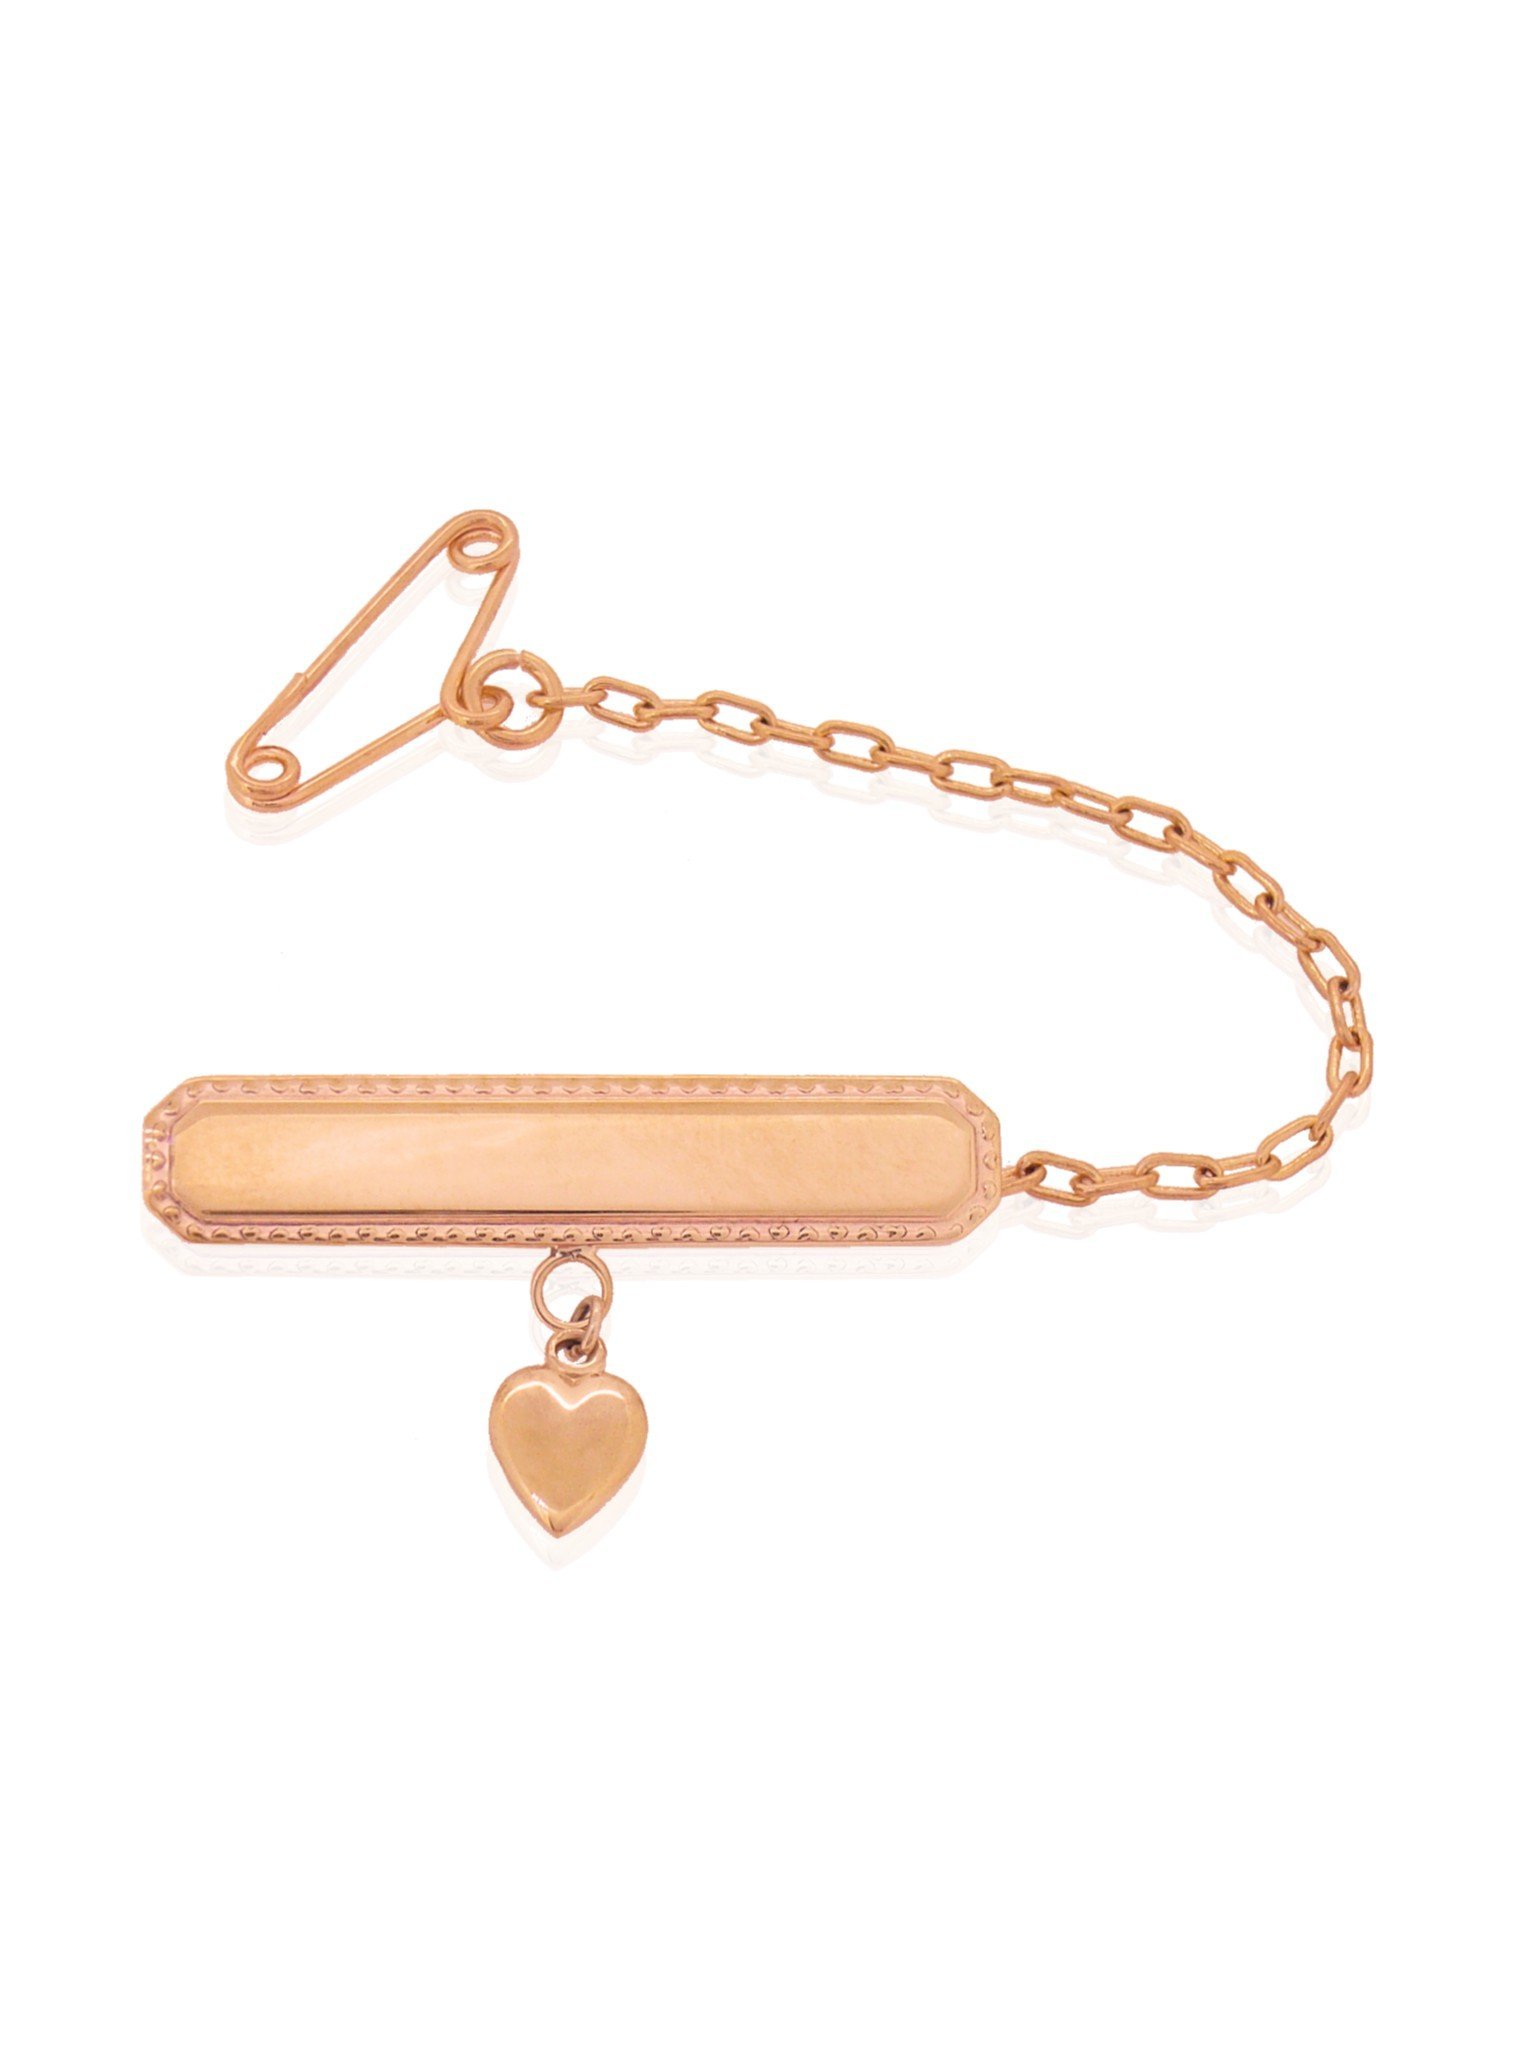 Heart Charm Identity Name Baby Brooch in 9ct Rose Gold